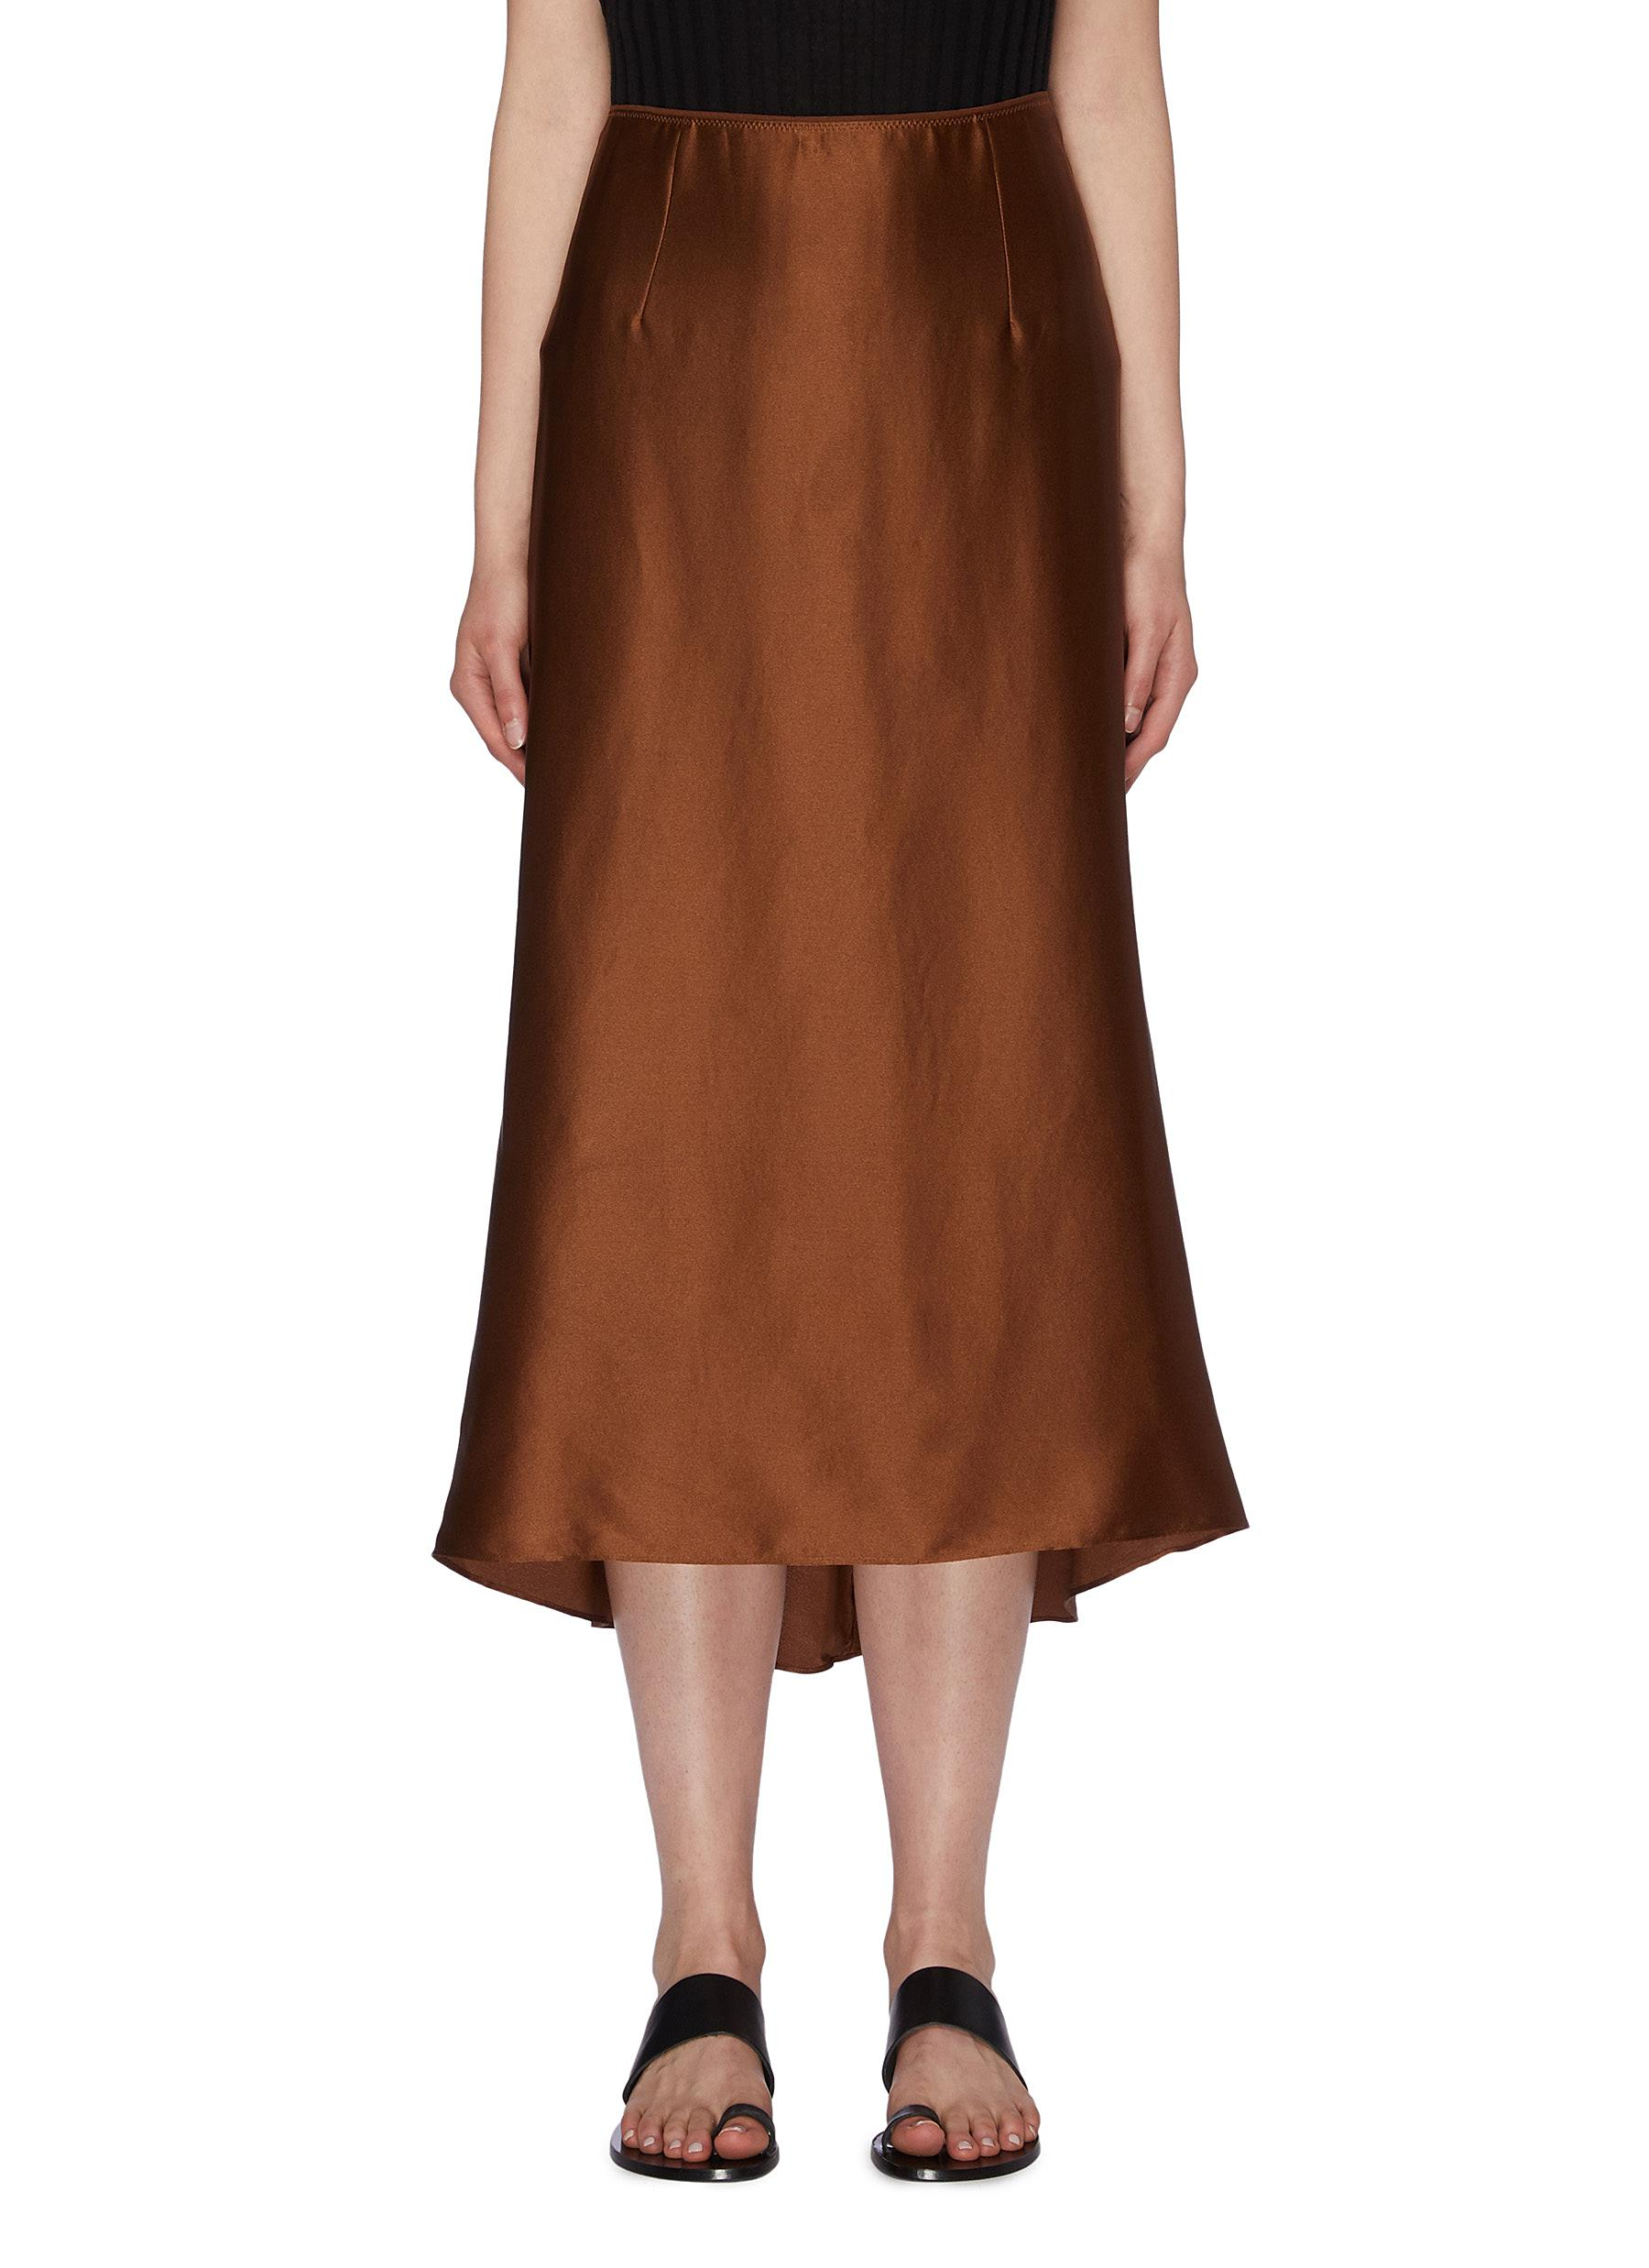 9ad6e353ac Main View - Click To Enlarge - VINCE - Silk satin midi skirt